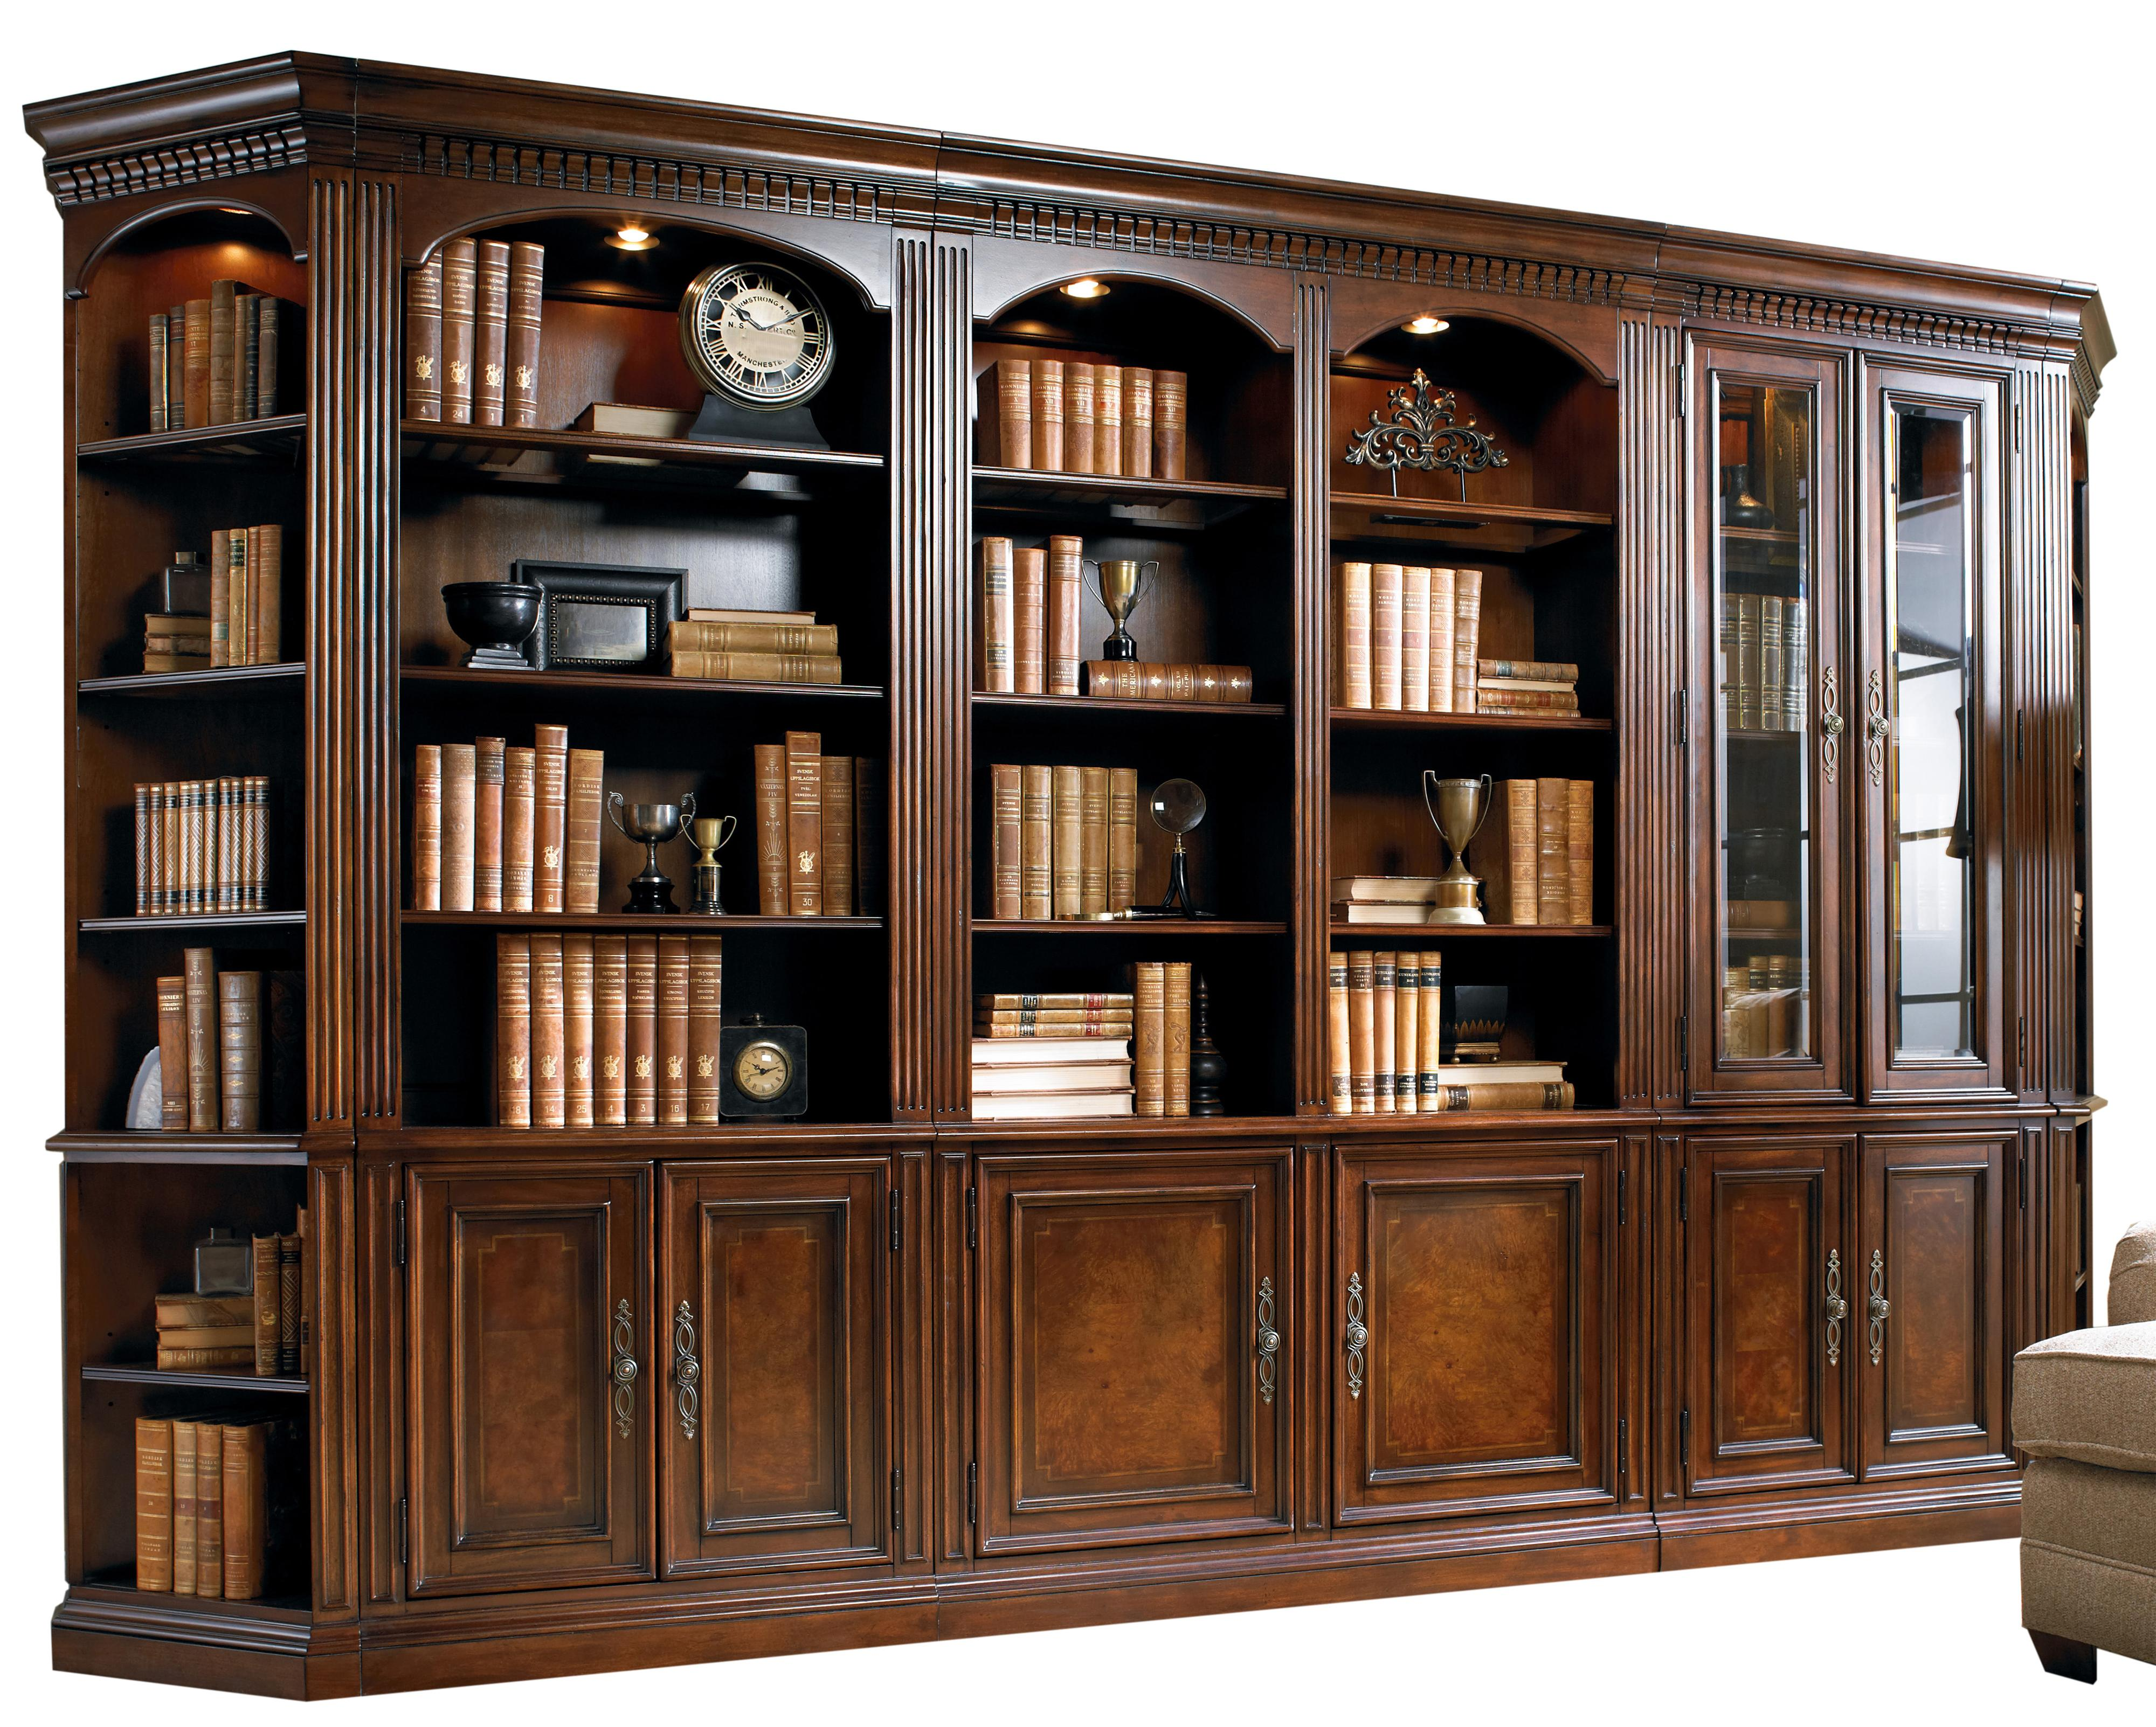 European Renaissance II Five-Piece Library Wall Unit by Hooker Furniture at Baer's Furniture